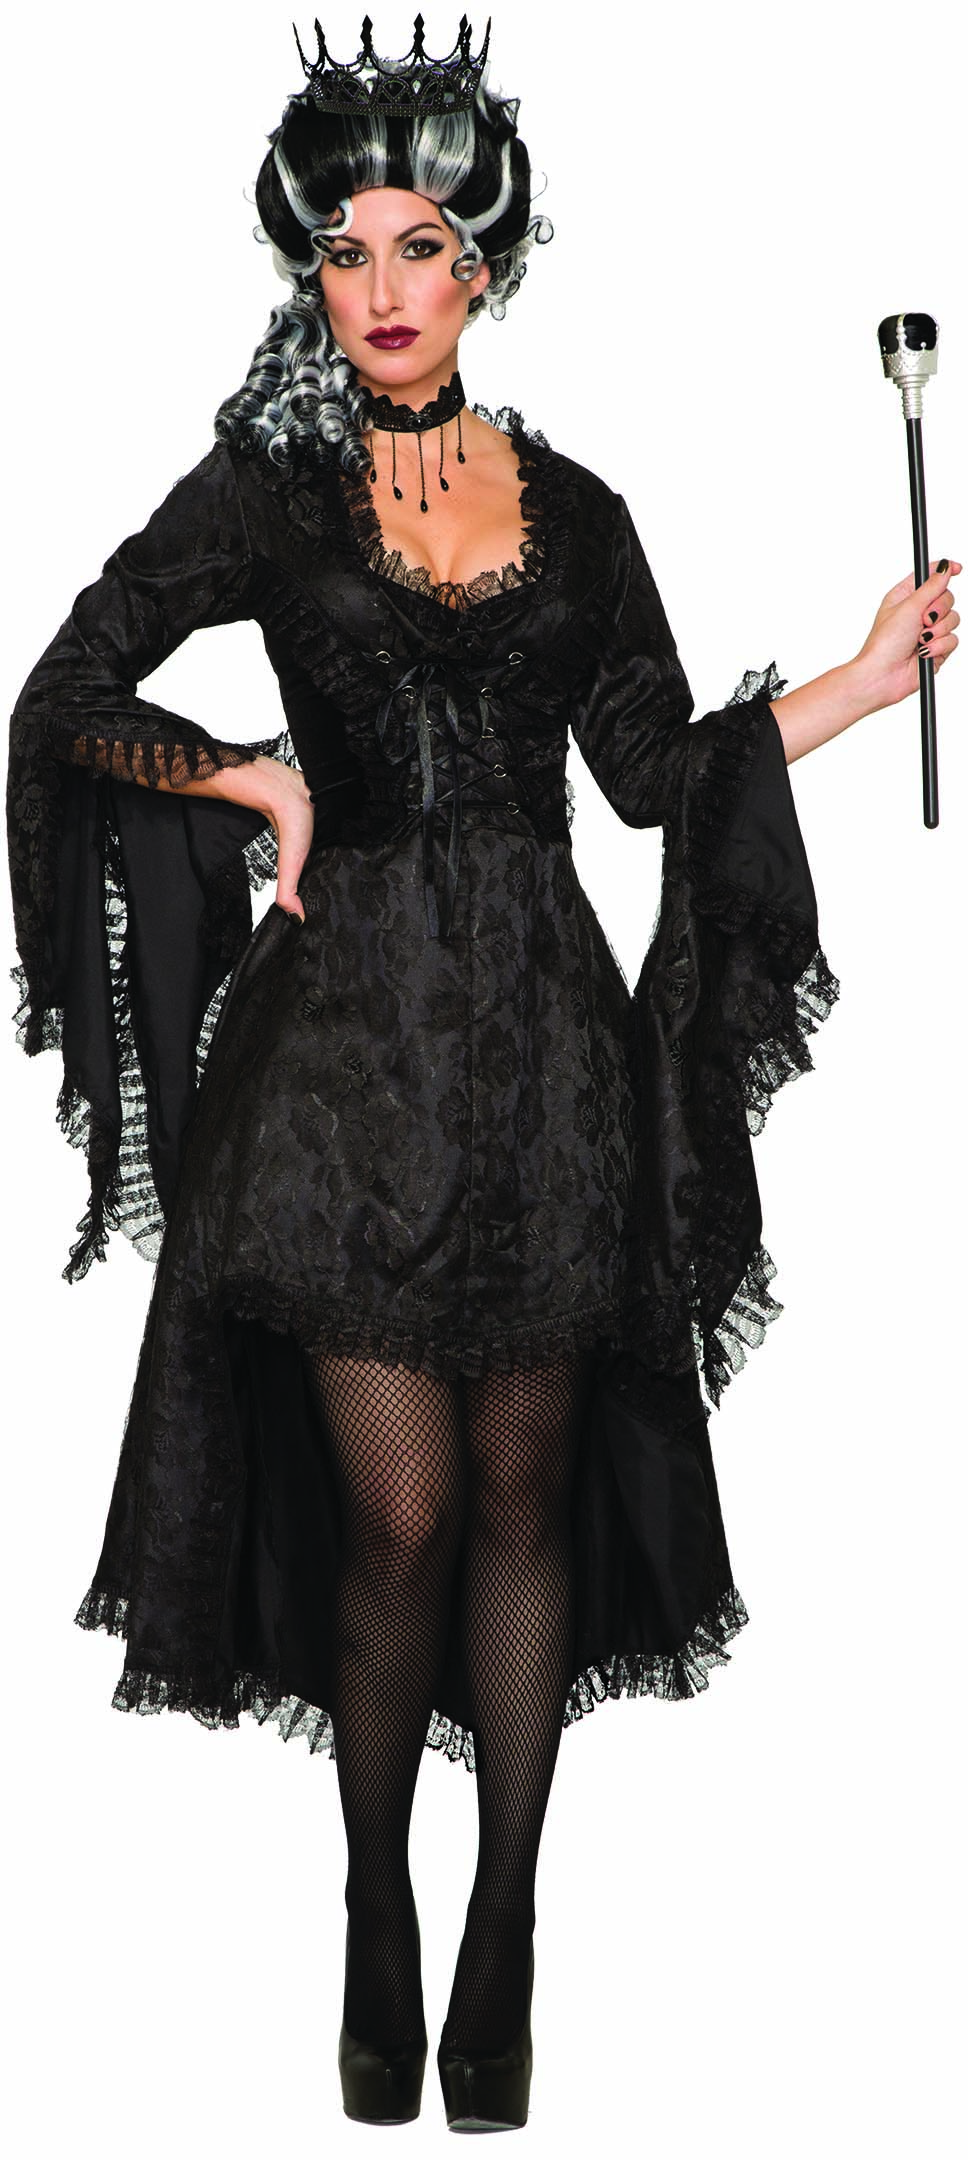 71de98ee694 Details about Dark Royalty Wicked Princess Black Gothic Dress Evil Queen  Witch Womens Costume